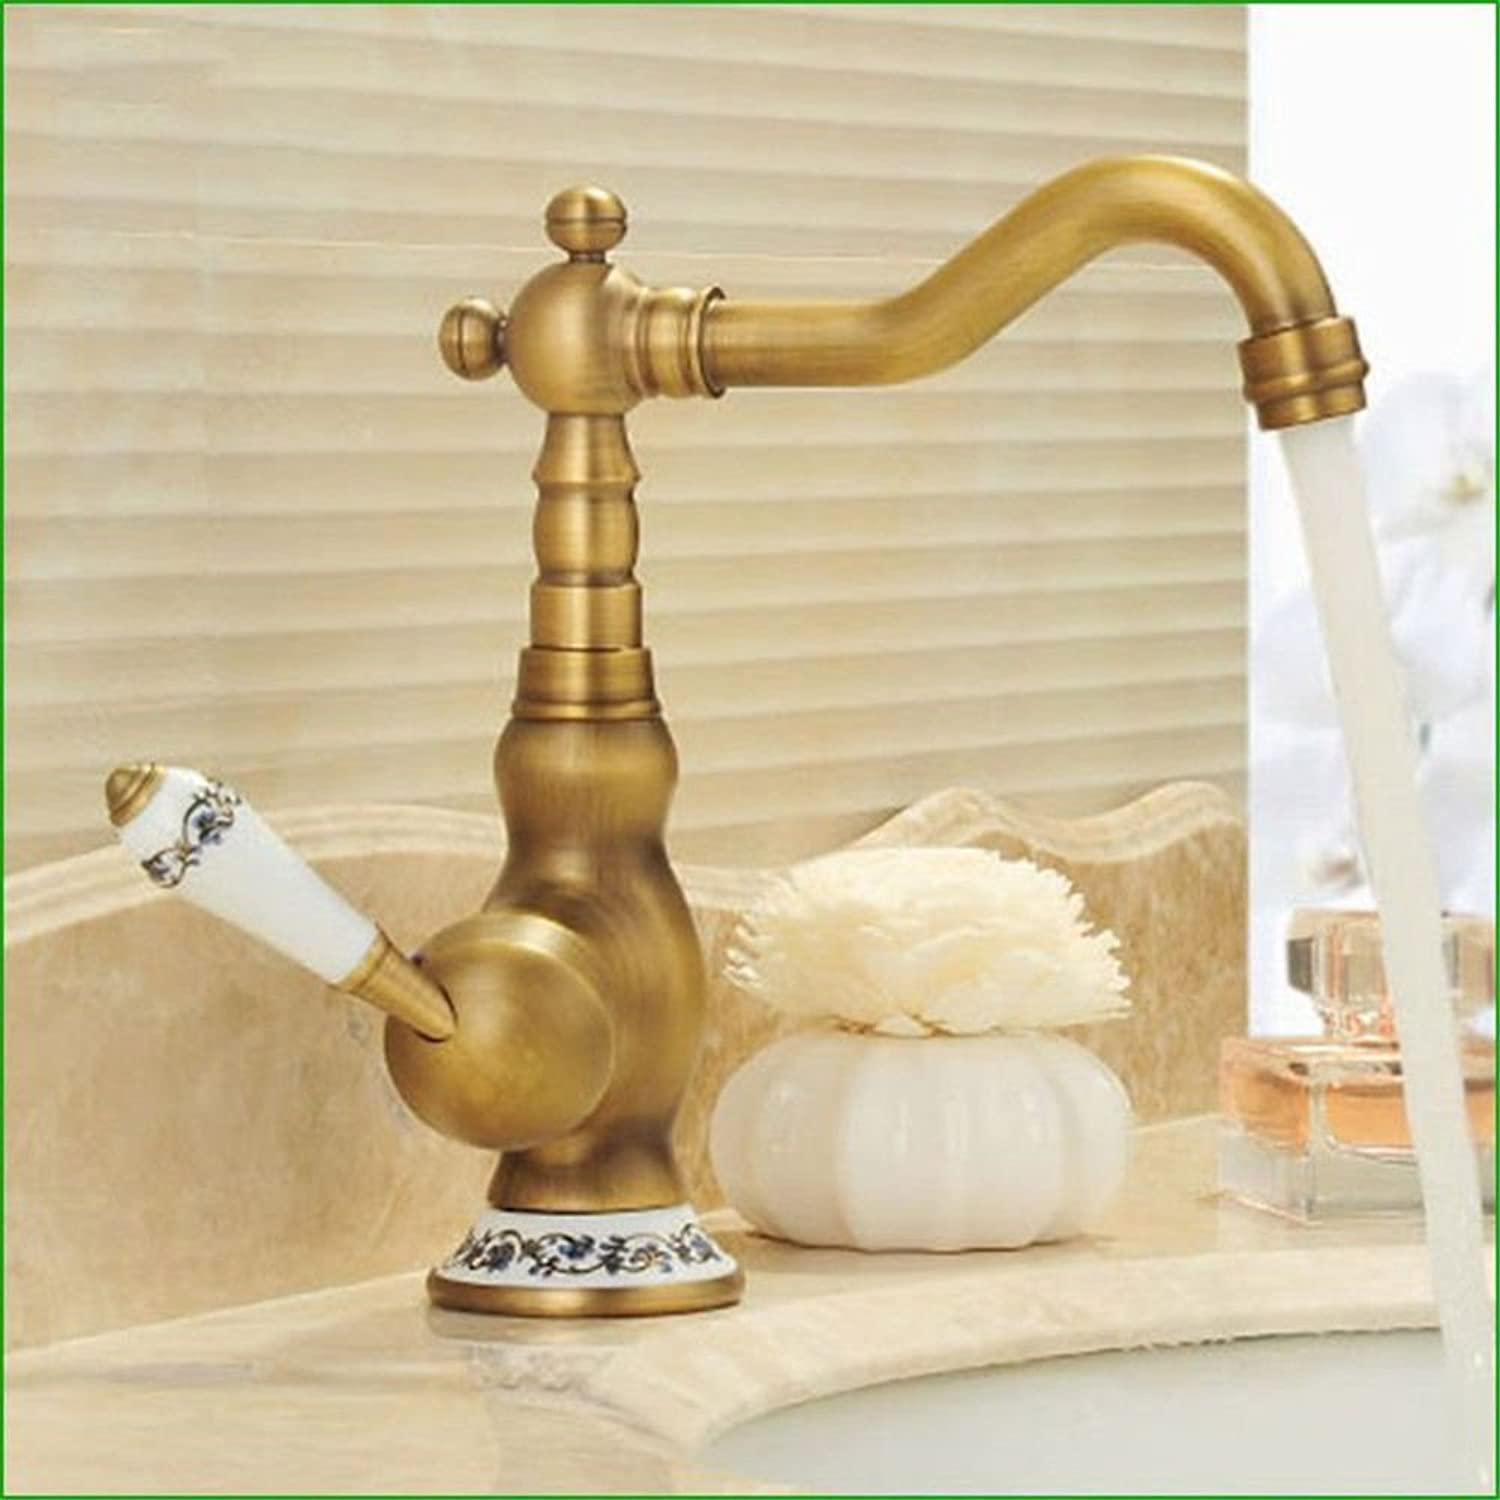 Hlluya Professional Sink Mixer Tap Kitchen Faucet Antique full copper cold water faucet antique slot to redate the dish dish washing basin Faucet